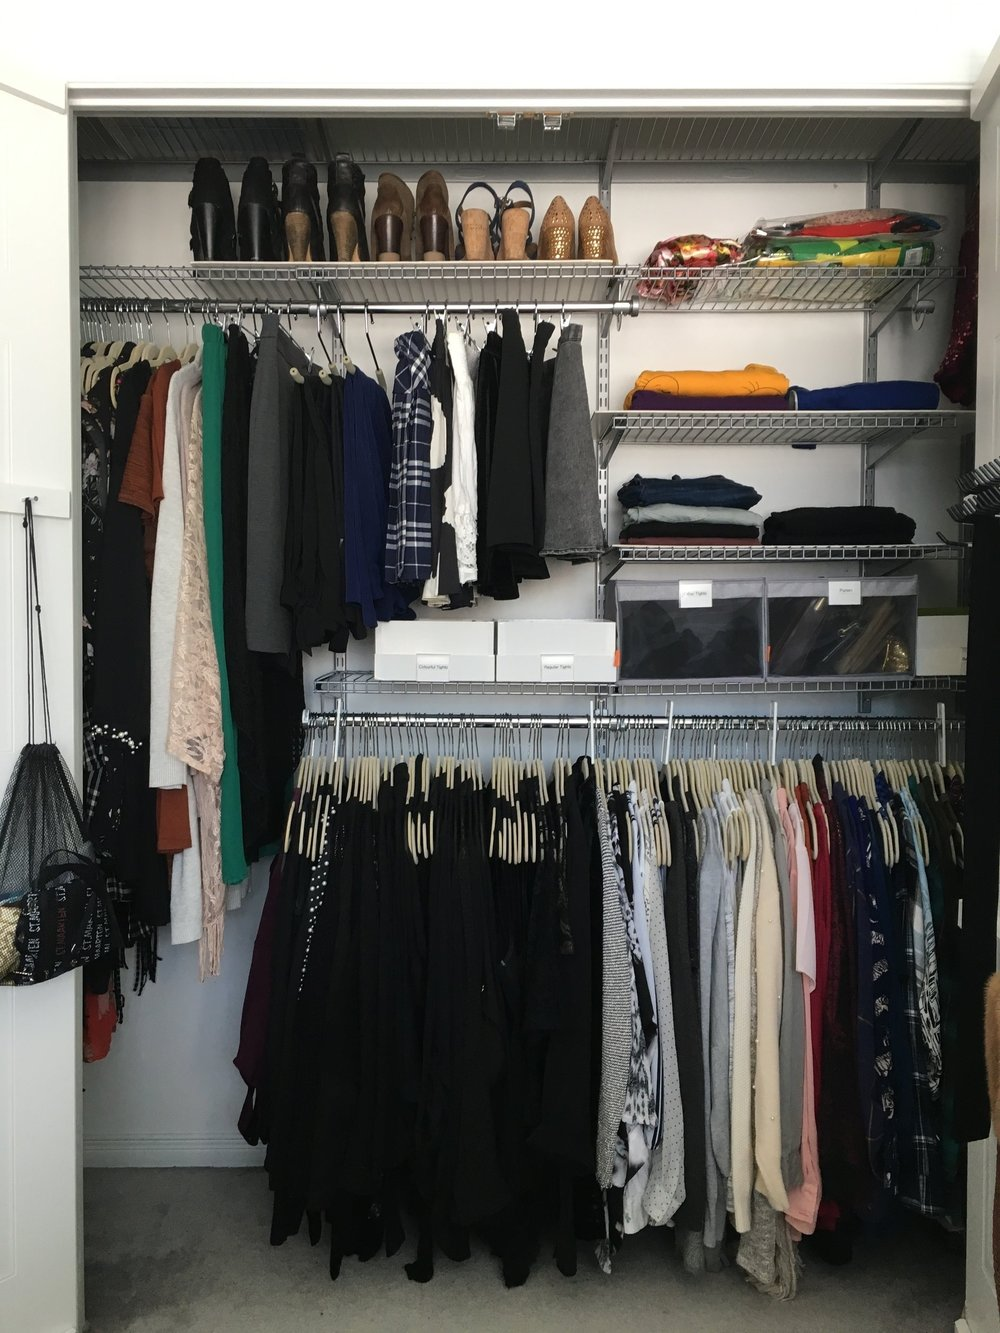 Closet 2: After